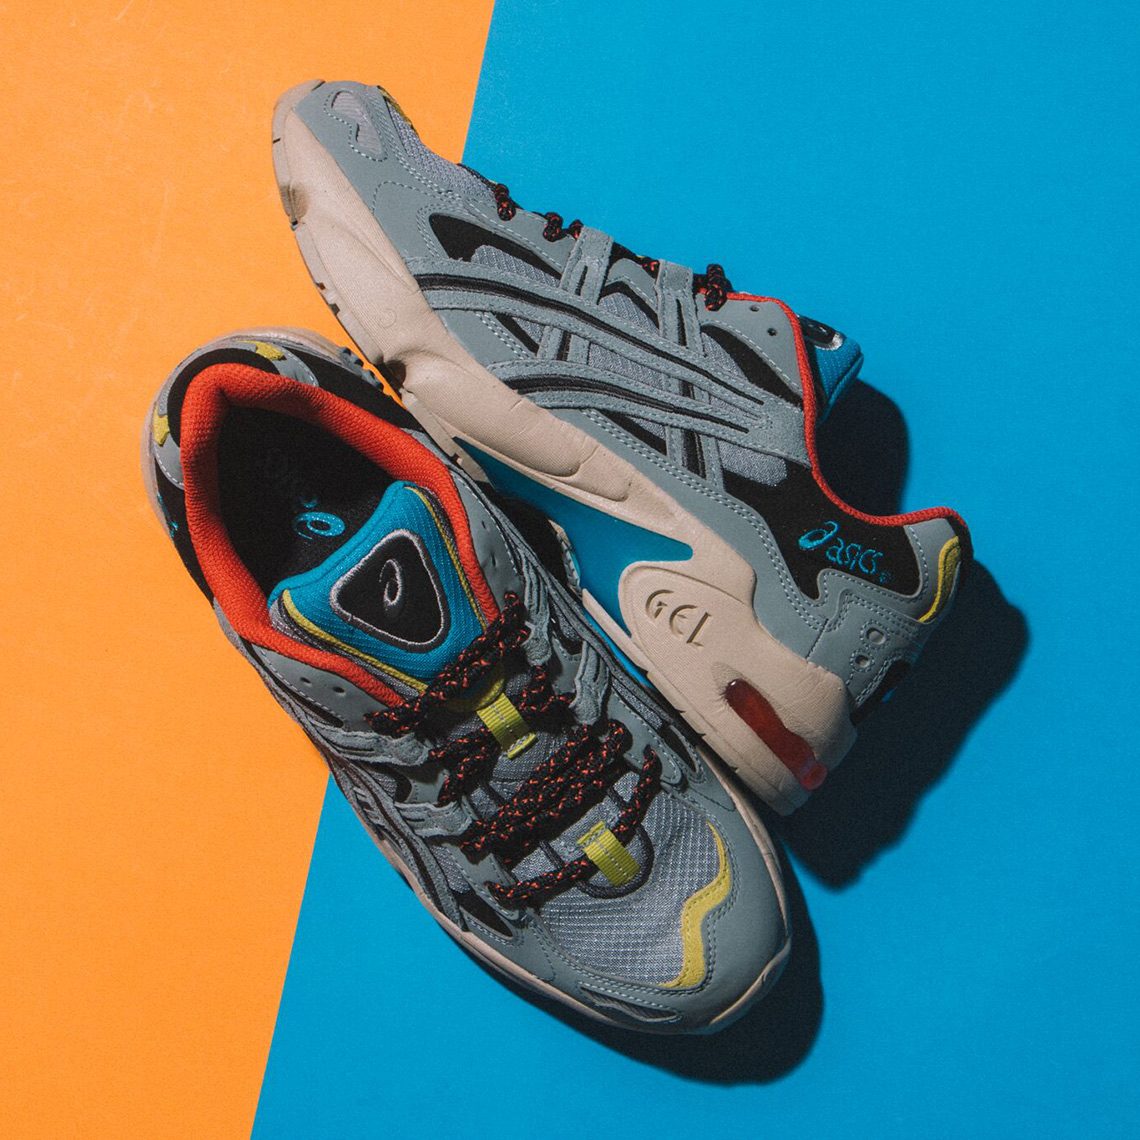 4564717b5aed9d ASICS Gel Kayano 5 Stone Grey Release Info SneakerNews com. ASICS Gel  Kayano 5 Stone. Nike Kyrie 4 ...